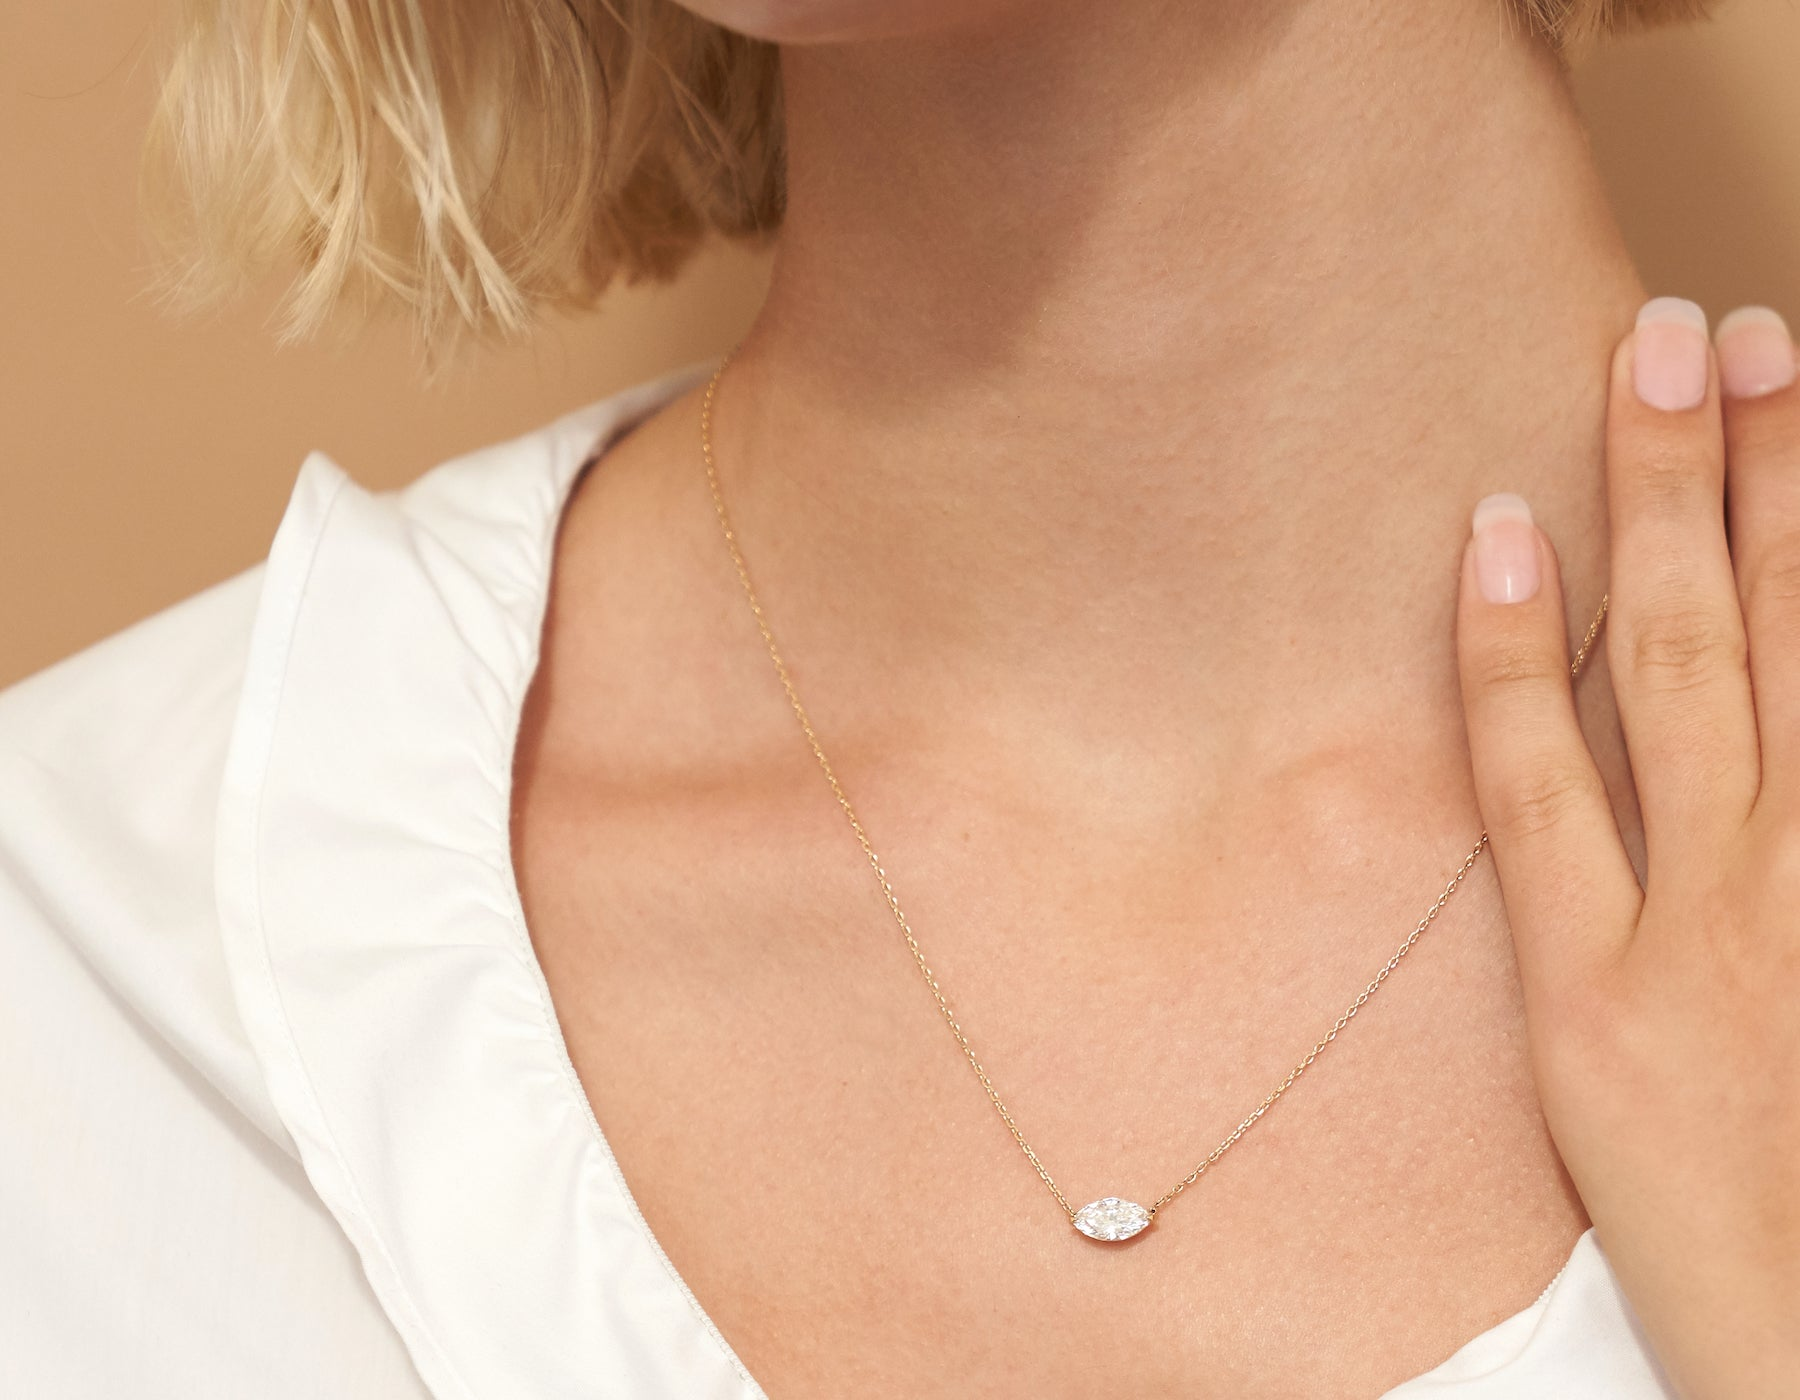 Model wearing Vrai 14K solid gold solitaire marquise diamond necklace 1ct minimalist delicate, 14K Rose Gold